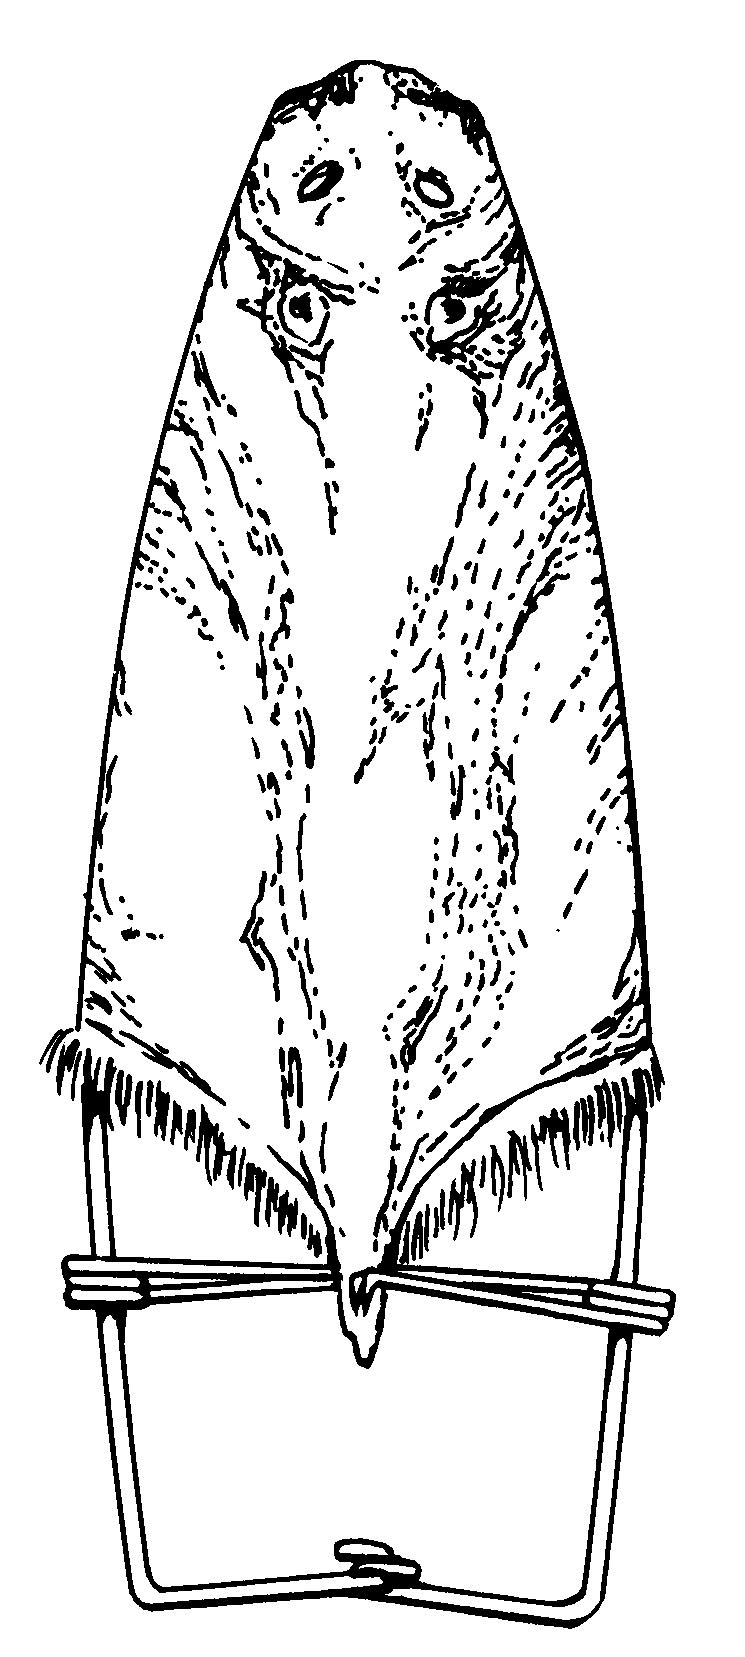 A muskrat pelt on a galvanized wire frame, showing the